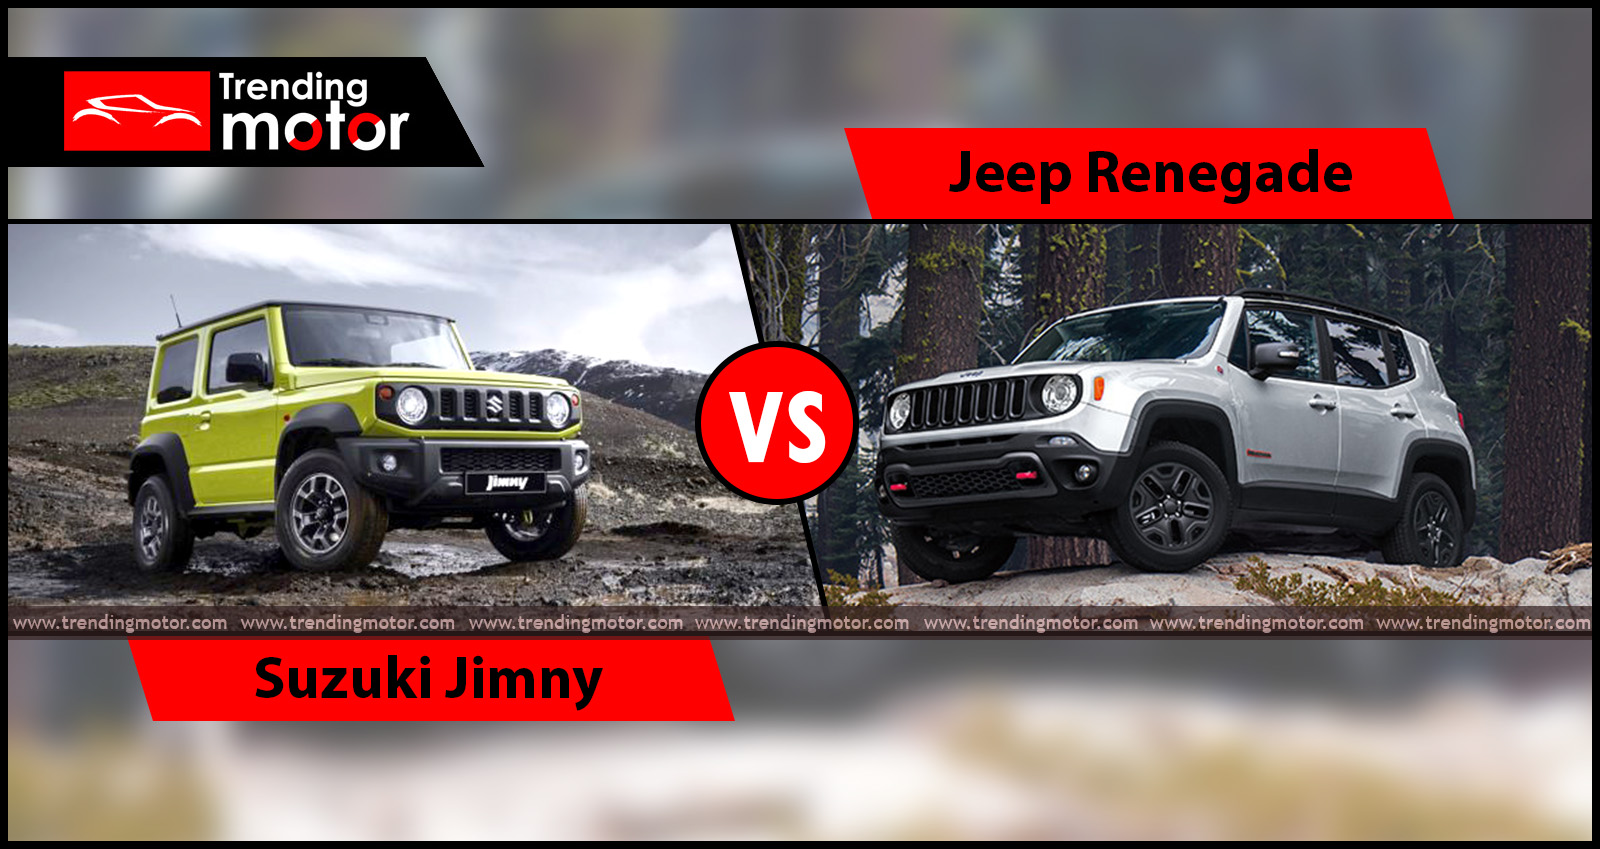 Suzuki Jimny Vs Jeep Renegade: Specifications & Features Comparison 2018